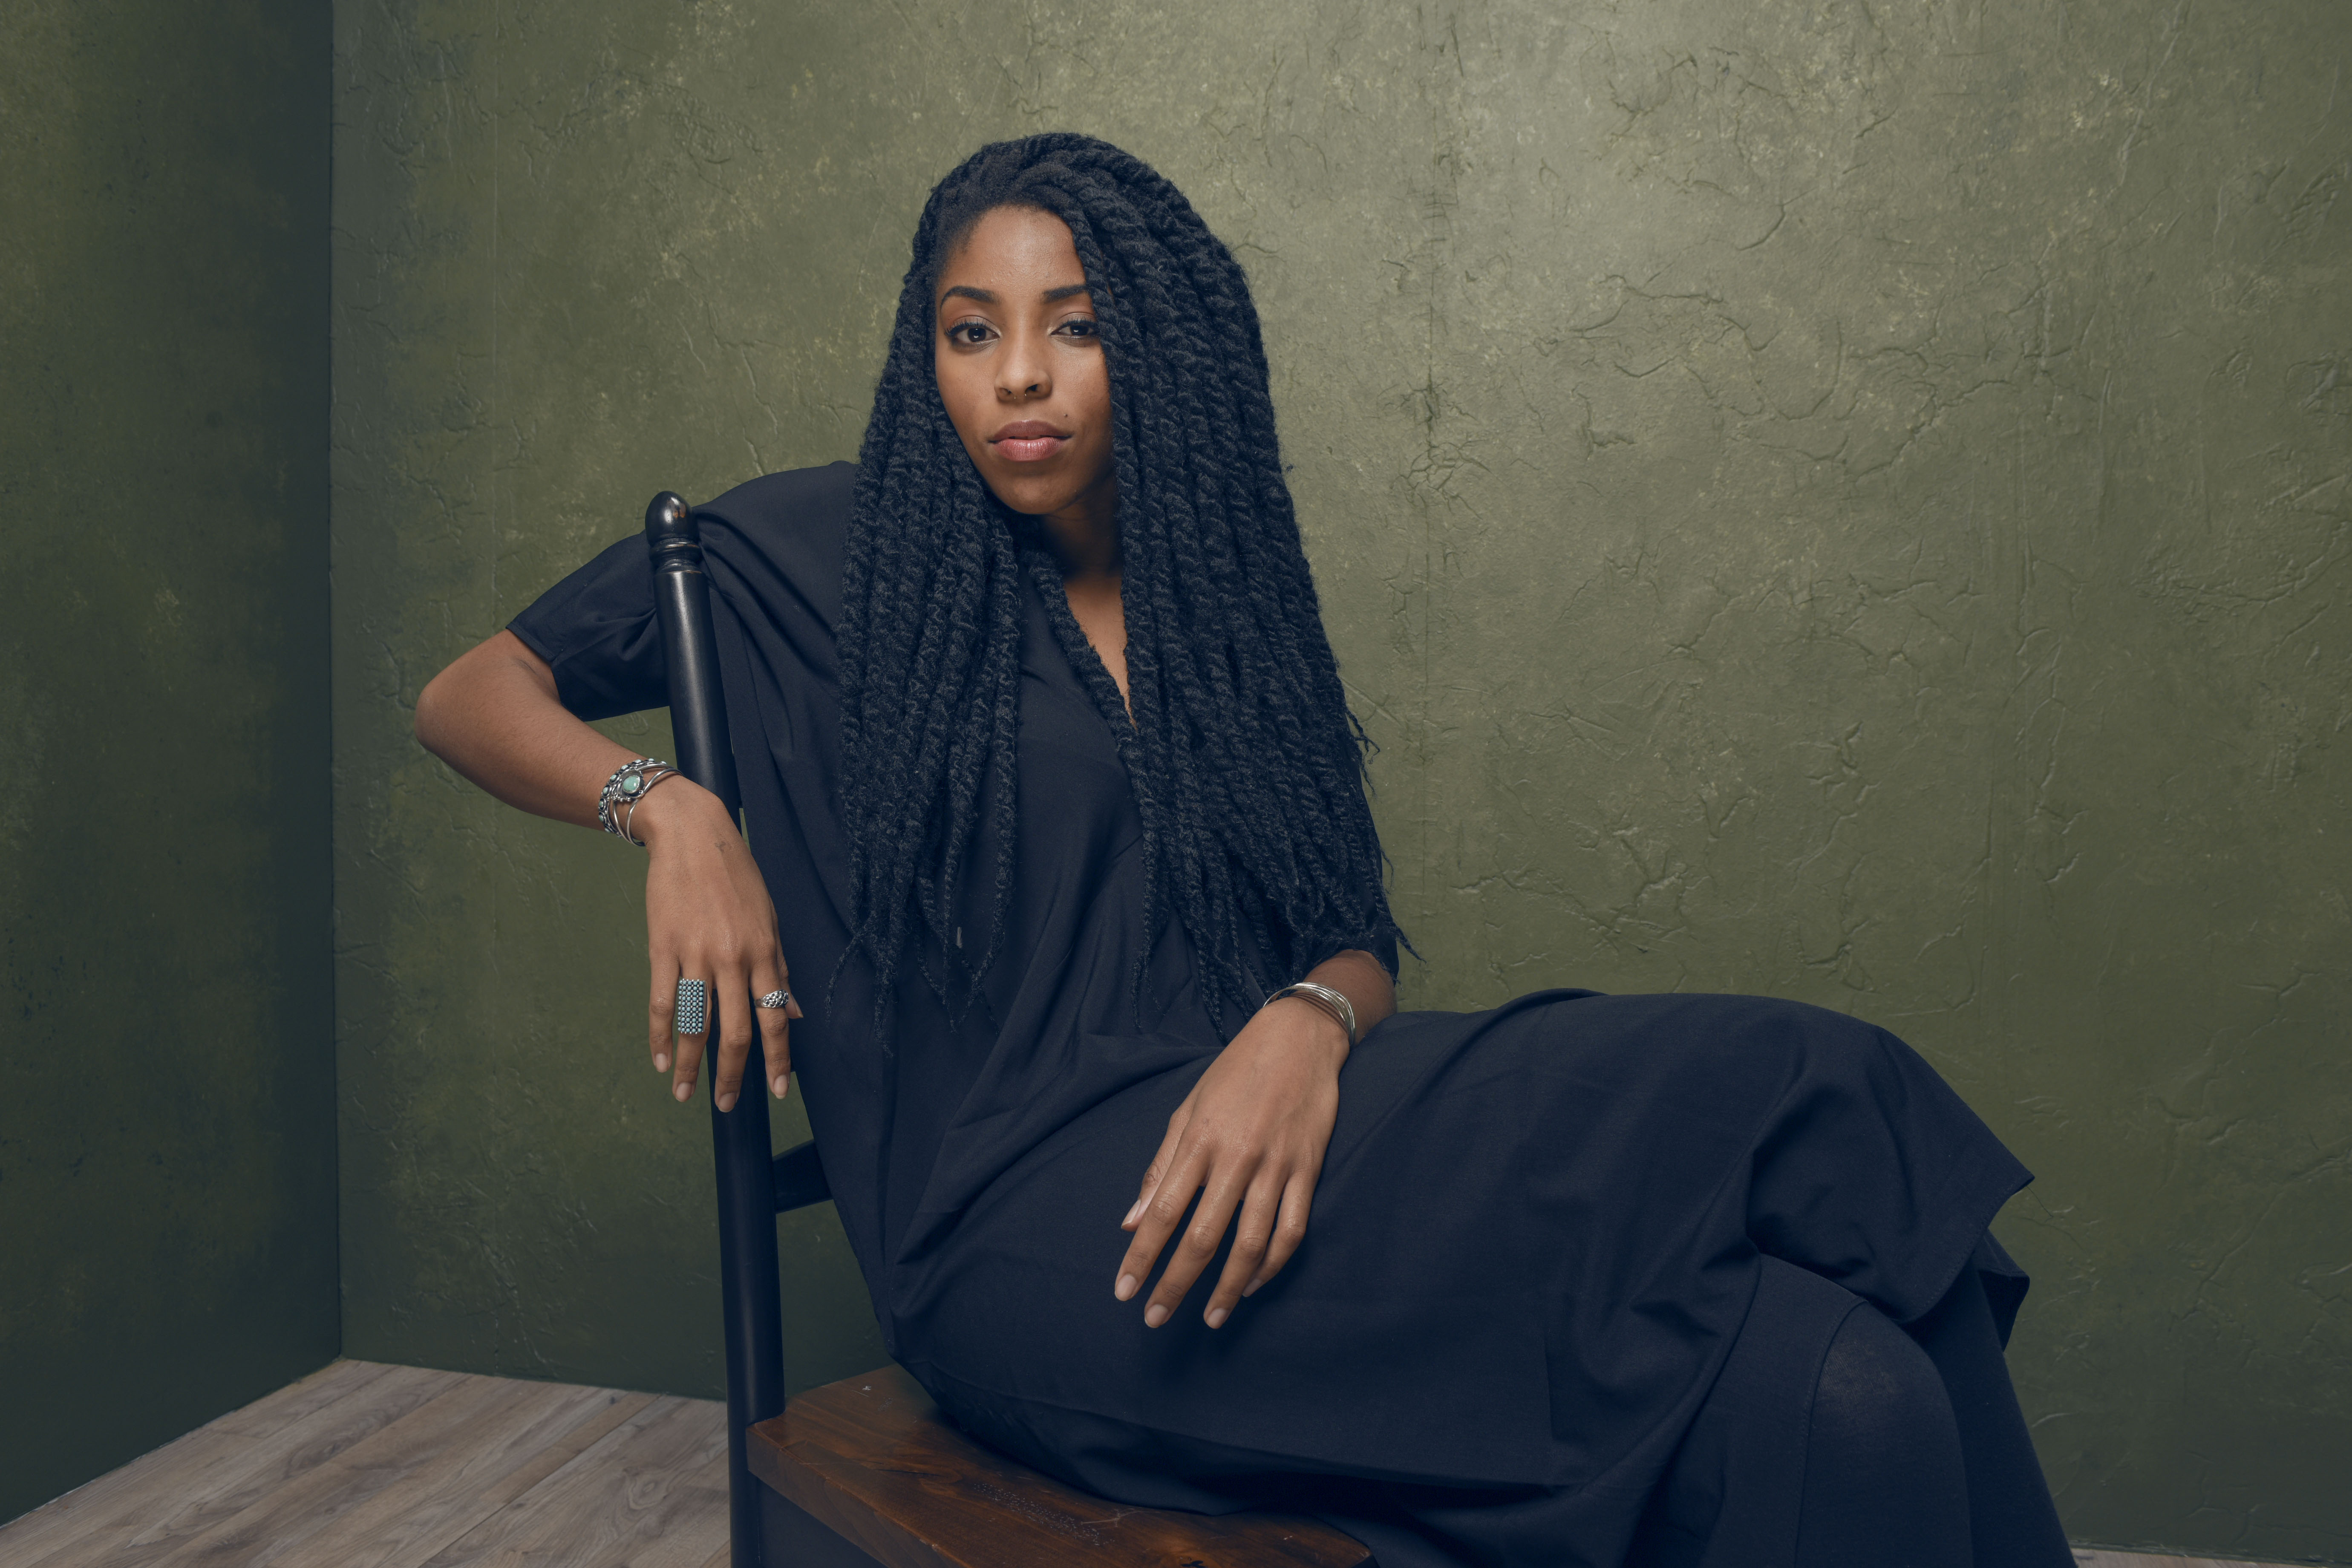 Actress Jessica Williams of 'People, Places, Things' poses for a portrait at the Village at the Lift Presented by McDonald's McCafe during the 2015 Sundance Film Festival on January 26, 2015 in Park City, Utah.